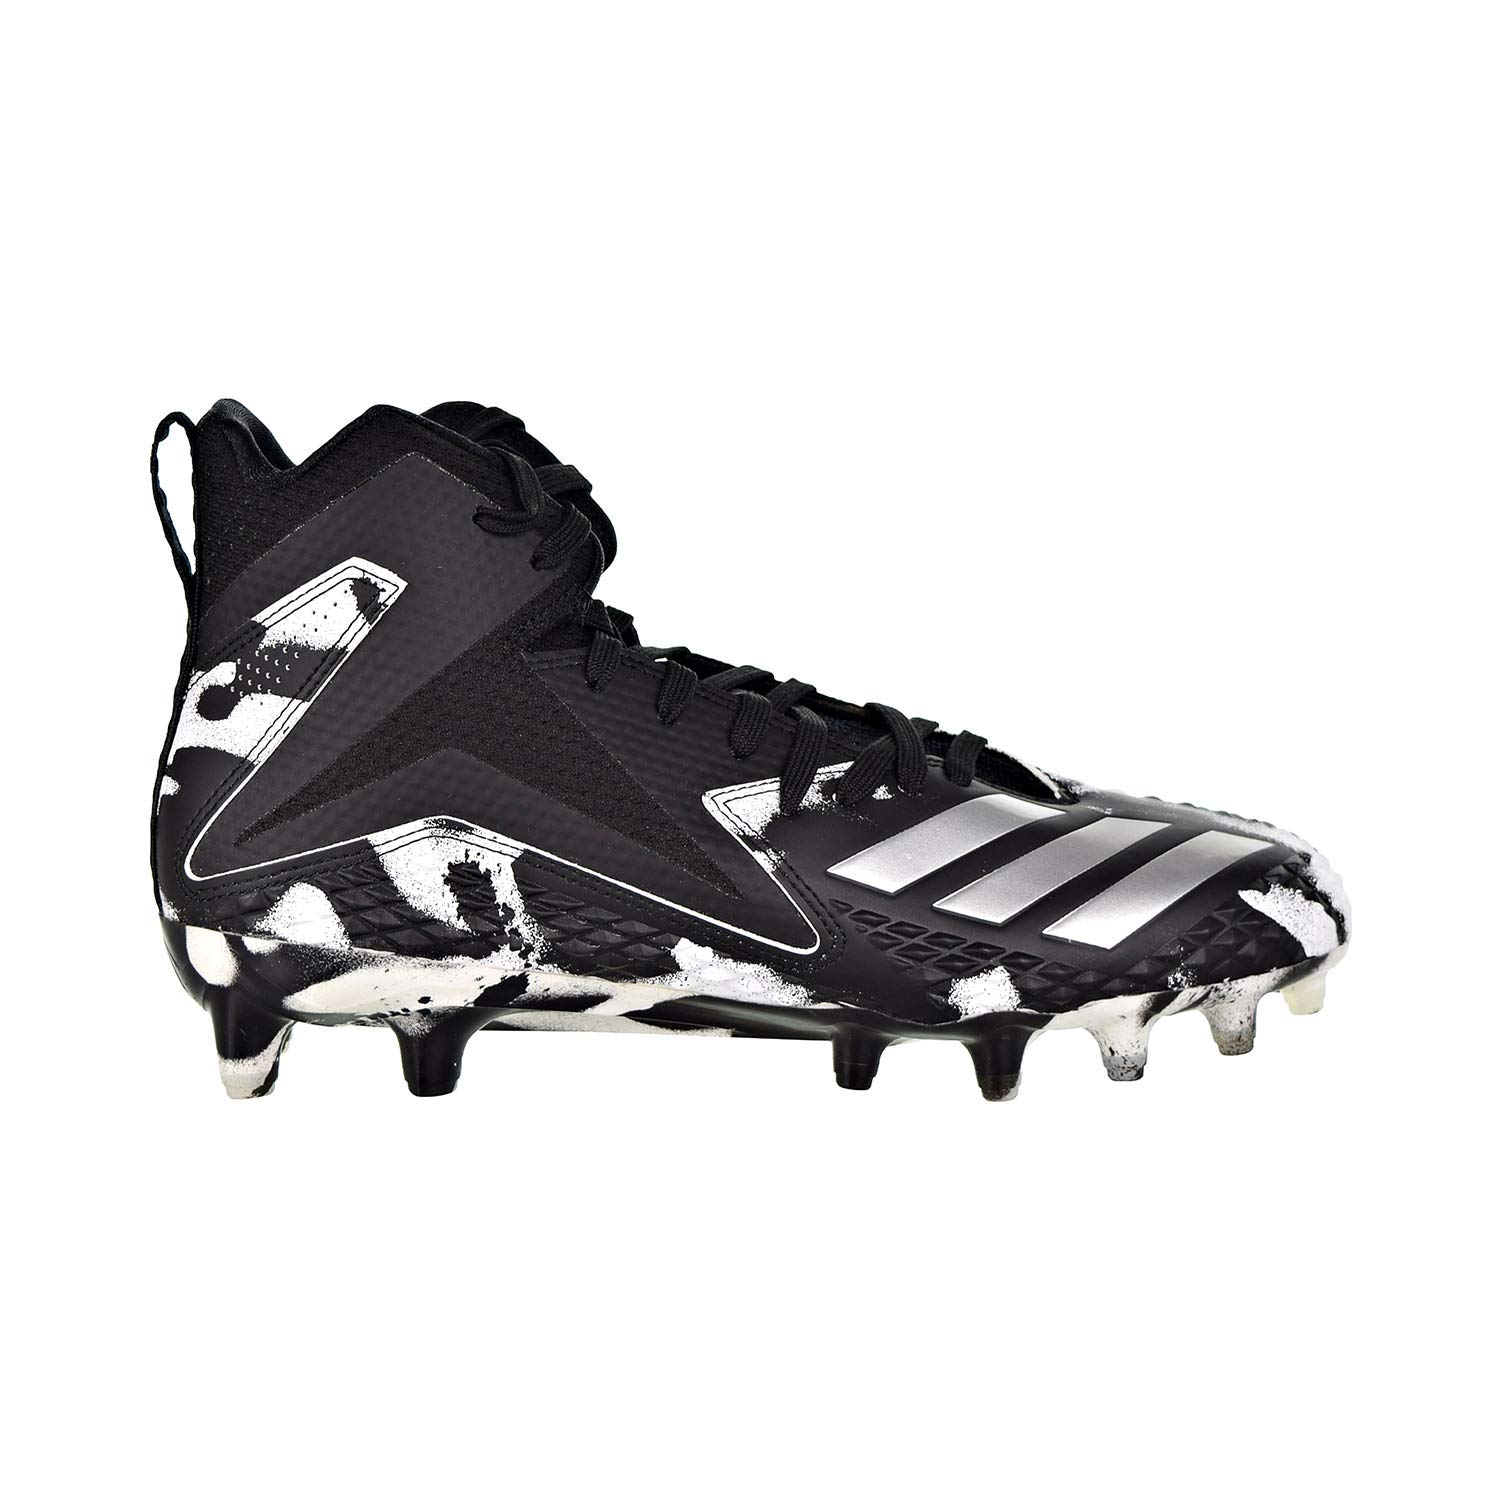 Core Black-Silver Metallic-White Adidas Freak X Carbon Mid Cleat Men's Football